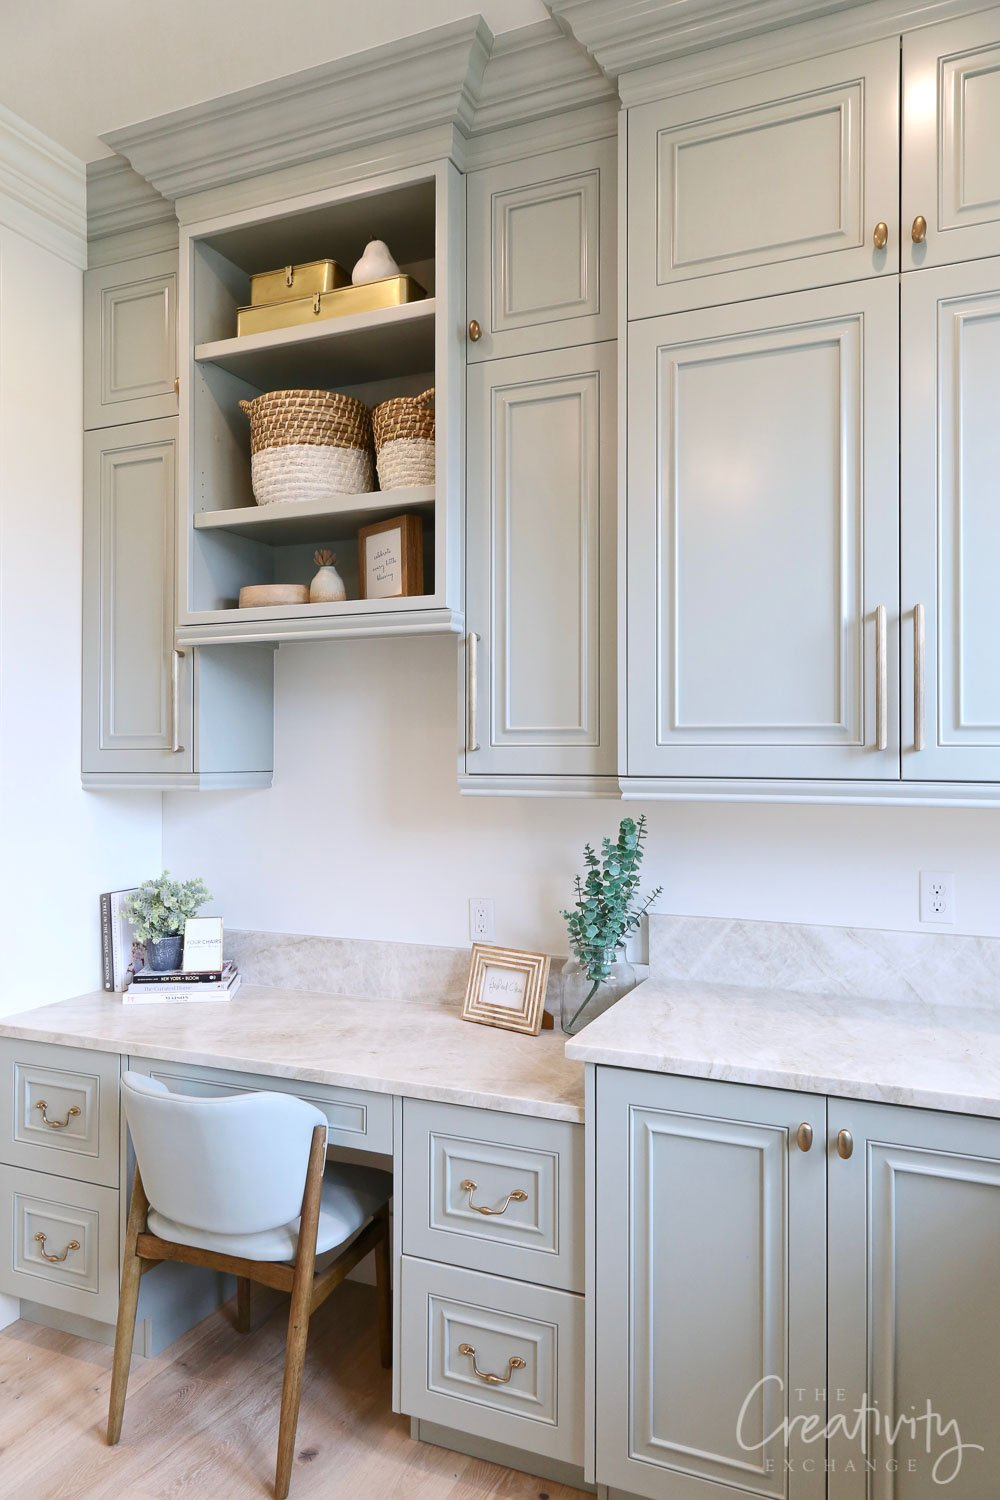 Cabinetry paint color is Farrow and Ball Light Blue